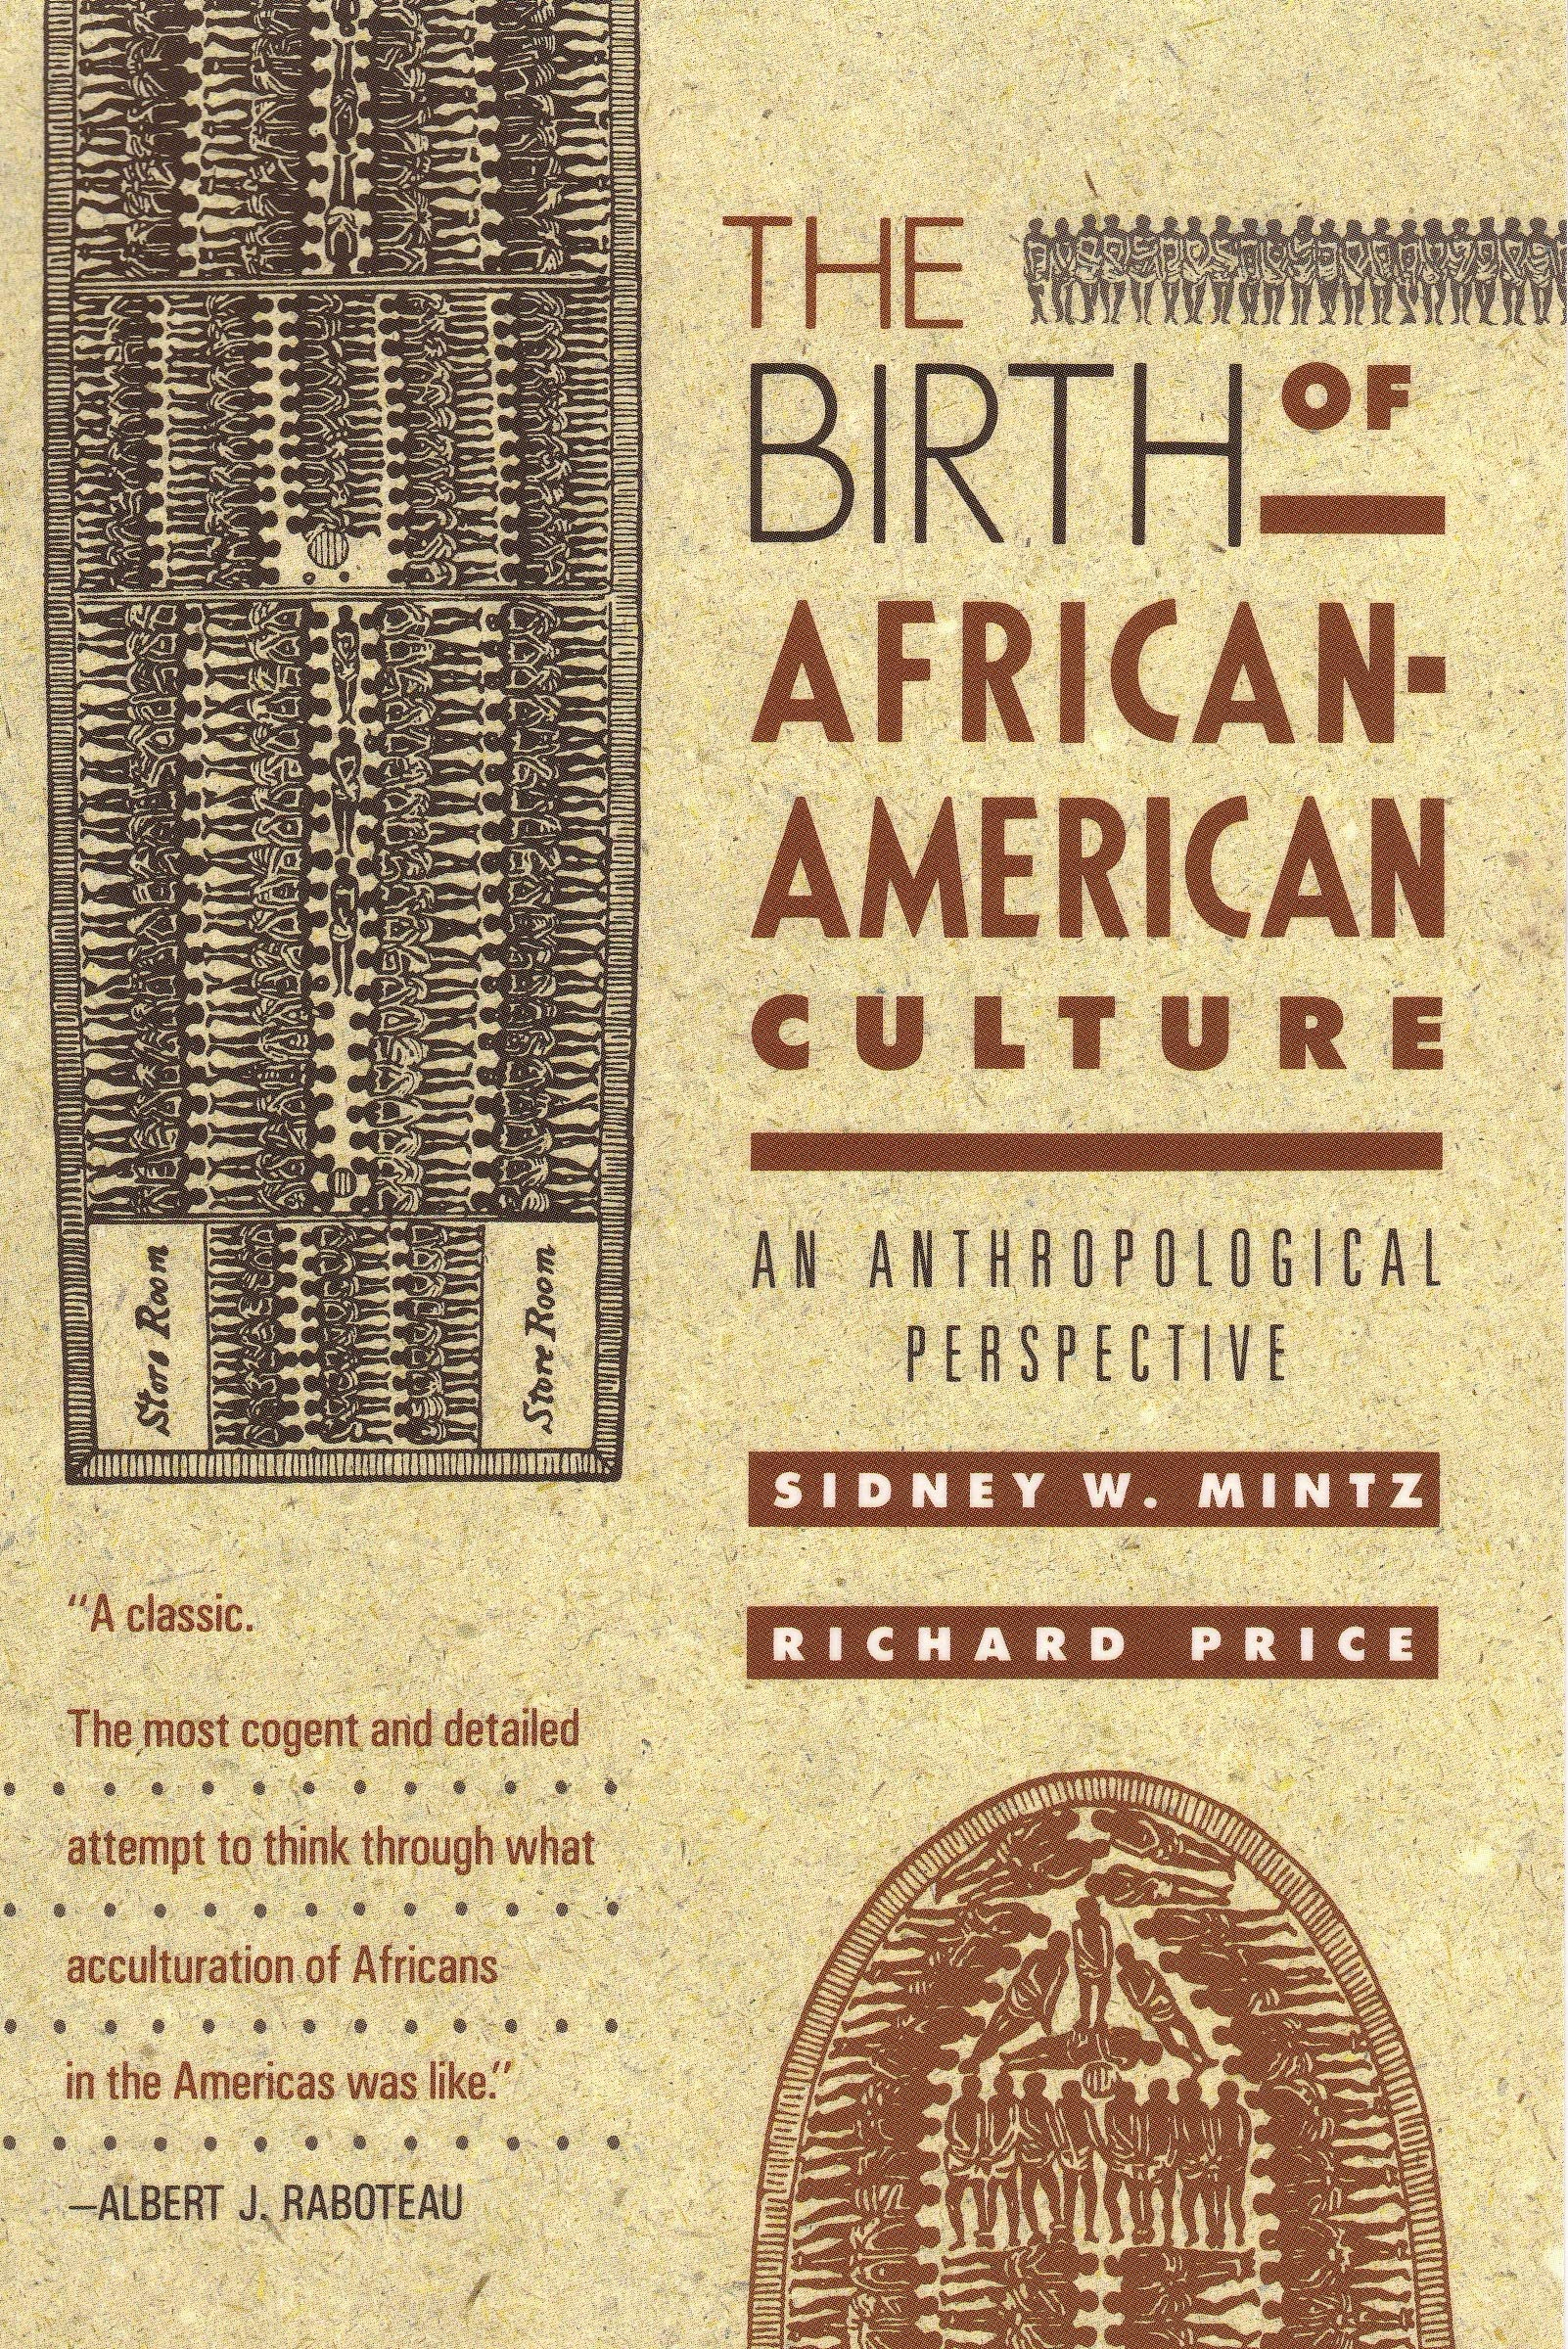 The Birth Of African American Culture  An Anthropological Perspective